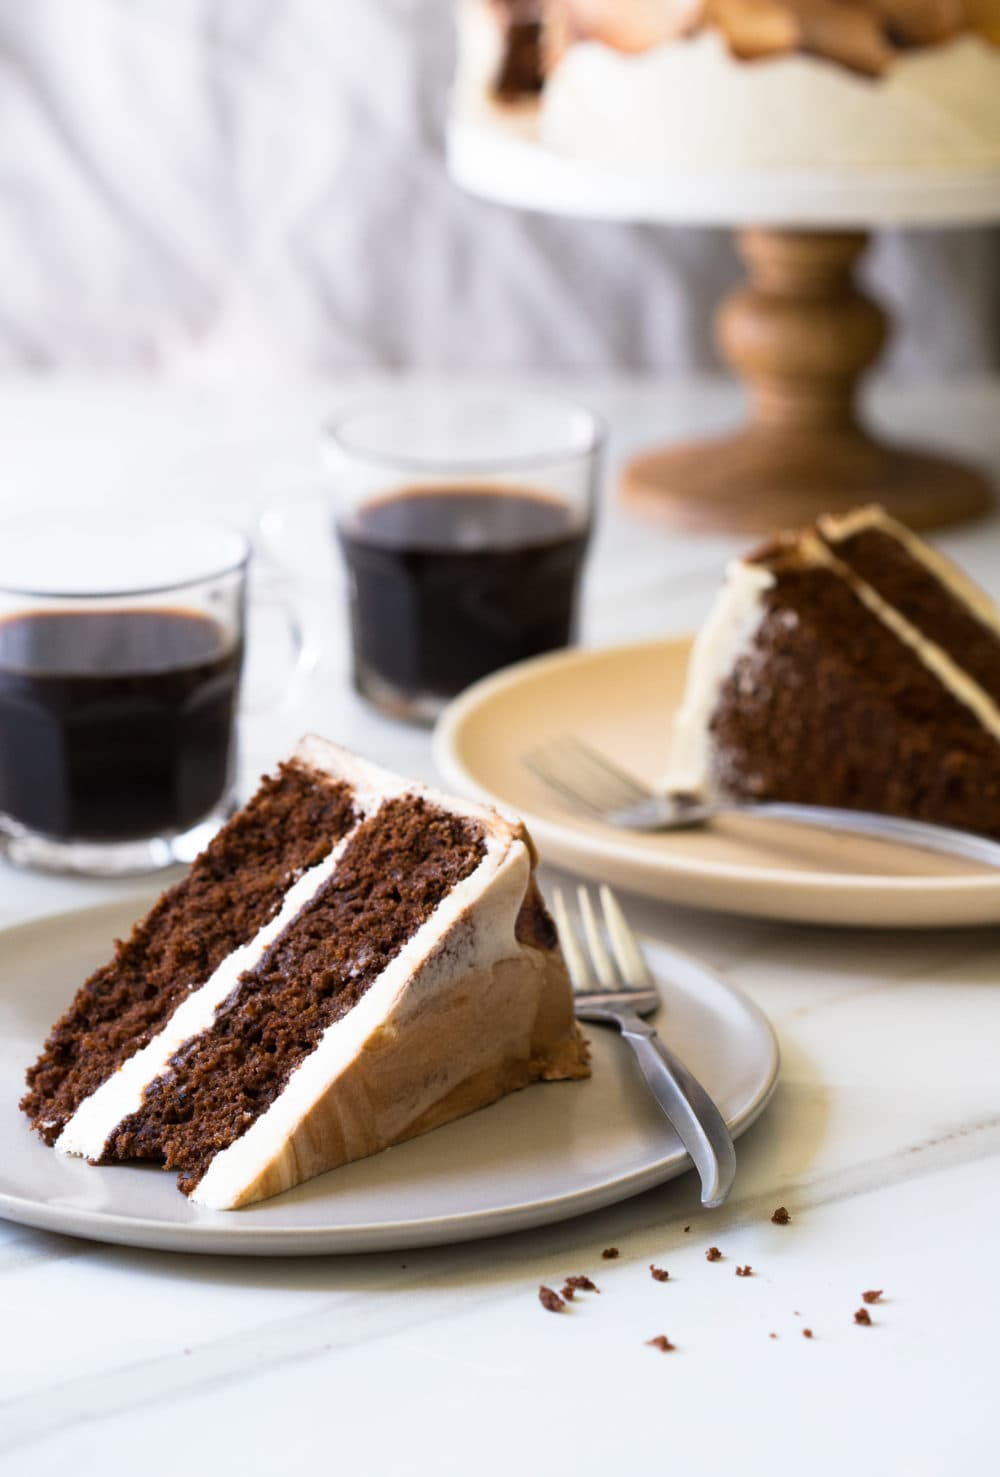 Front-facing view of two slices of Vietnamese Coffee Cake on cream-colored plates, plus two cups of coffee in the background.